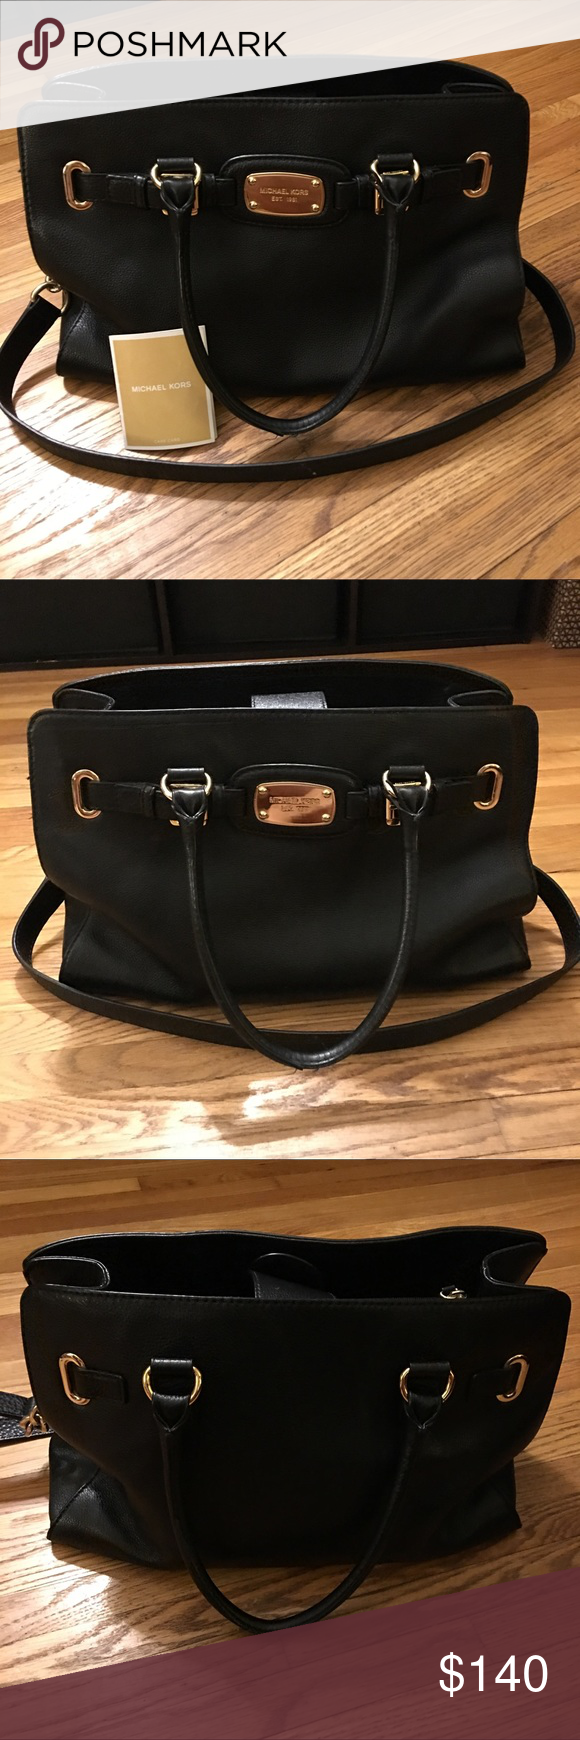 Authentic Michael Kors Hamilton Black Leather MK Hamilton (Large)  Excellent Condition  Smoke free/Pet free Purchased at MK store in March '16 @ retail $300+  Nice Pebbled Leather Tote In Black With Gold Accents. Double 6'' Handle Drop And 16'' Shoulder Drop. Measurements: 13.75 W X 13.25 H X 4 D  Price is Firm.   (This item is crossposted) Michael Kors Bags Shoulder Bags